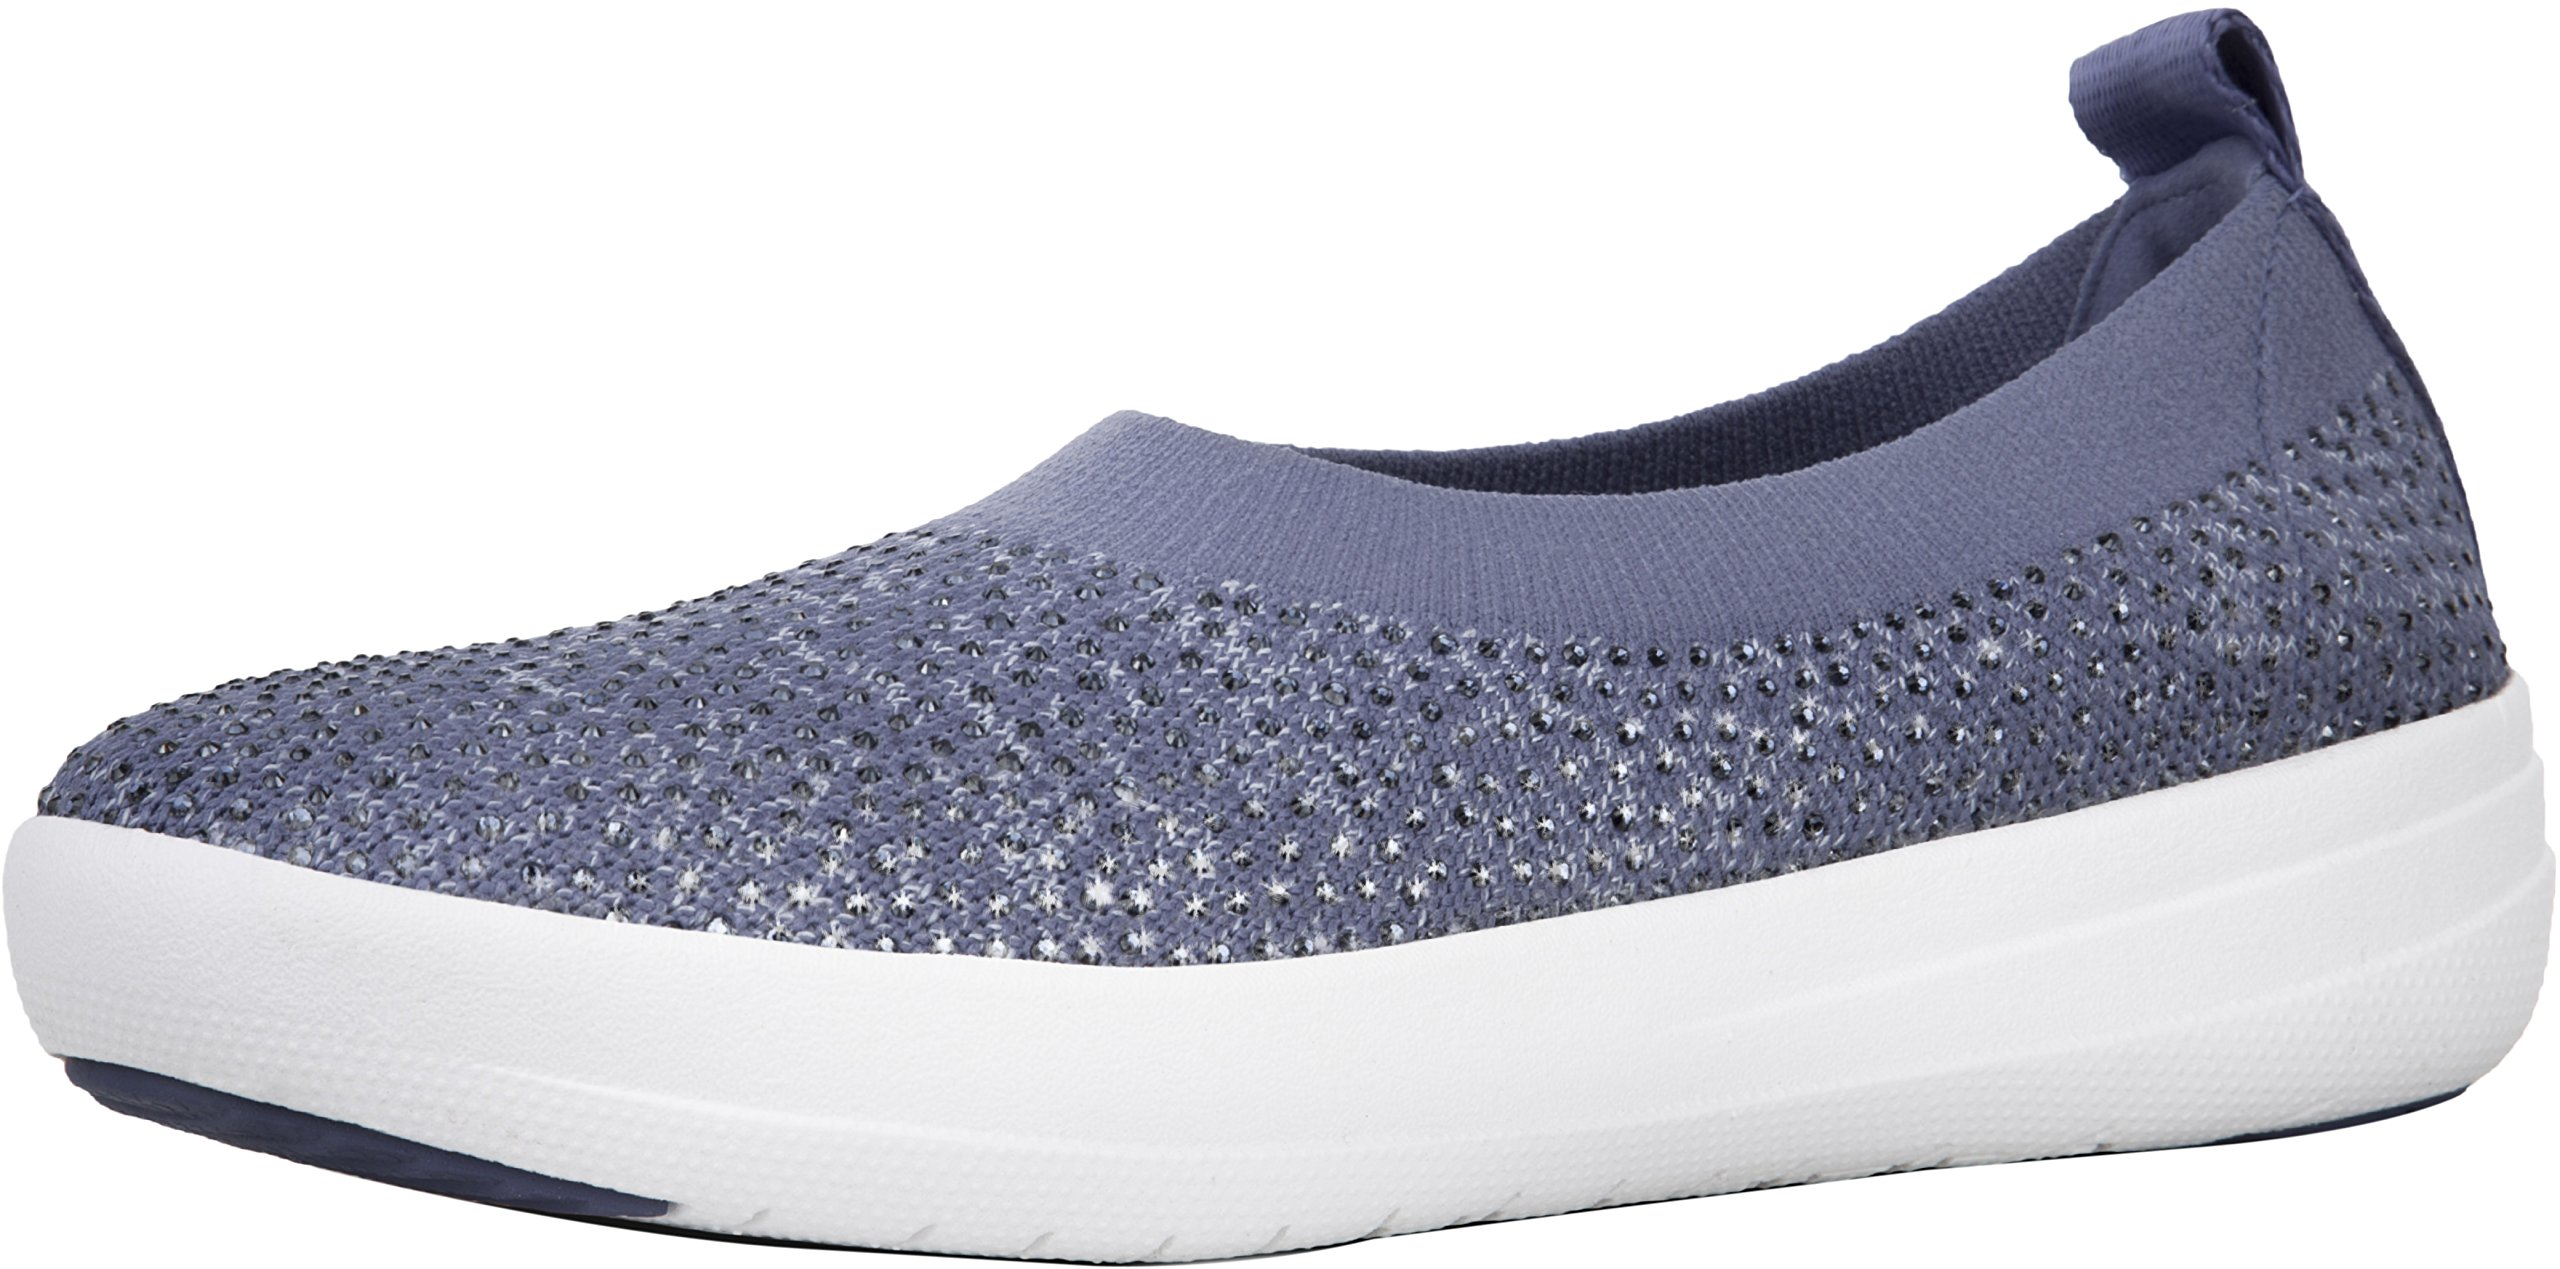 75907df6b Galleon - FitFlop Women s Uberknit Slip-On Ballerina Indian Blue Powder  Blue 6 M US